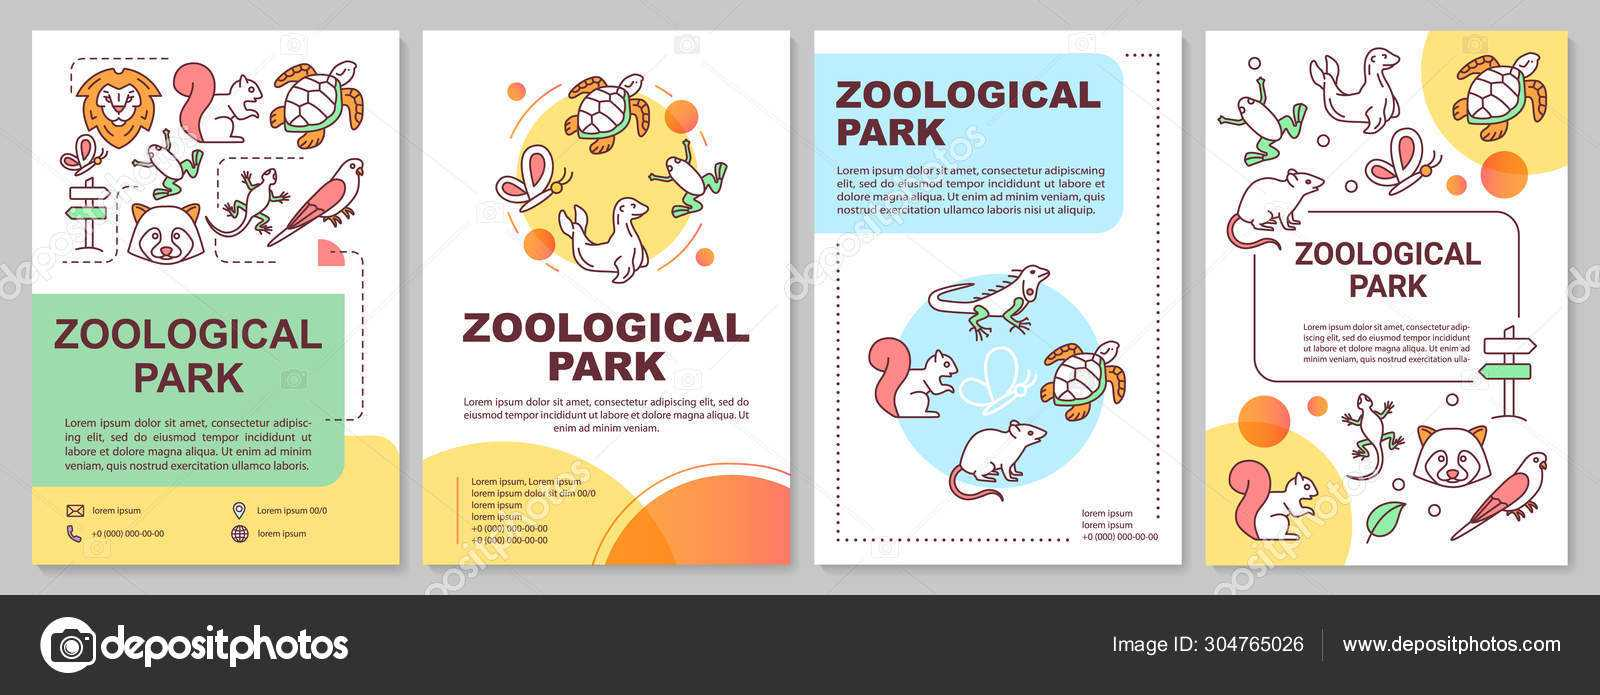 Zoological Park Brochure Template Layout. Zoo Animals. Flyer For Zoo Brochure Template